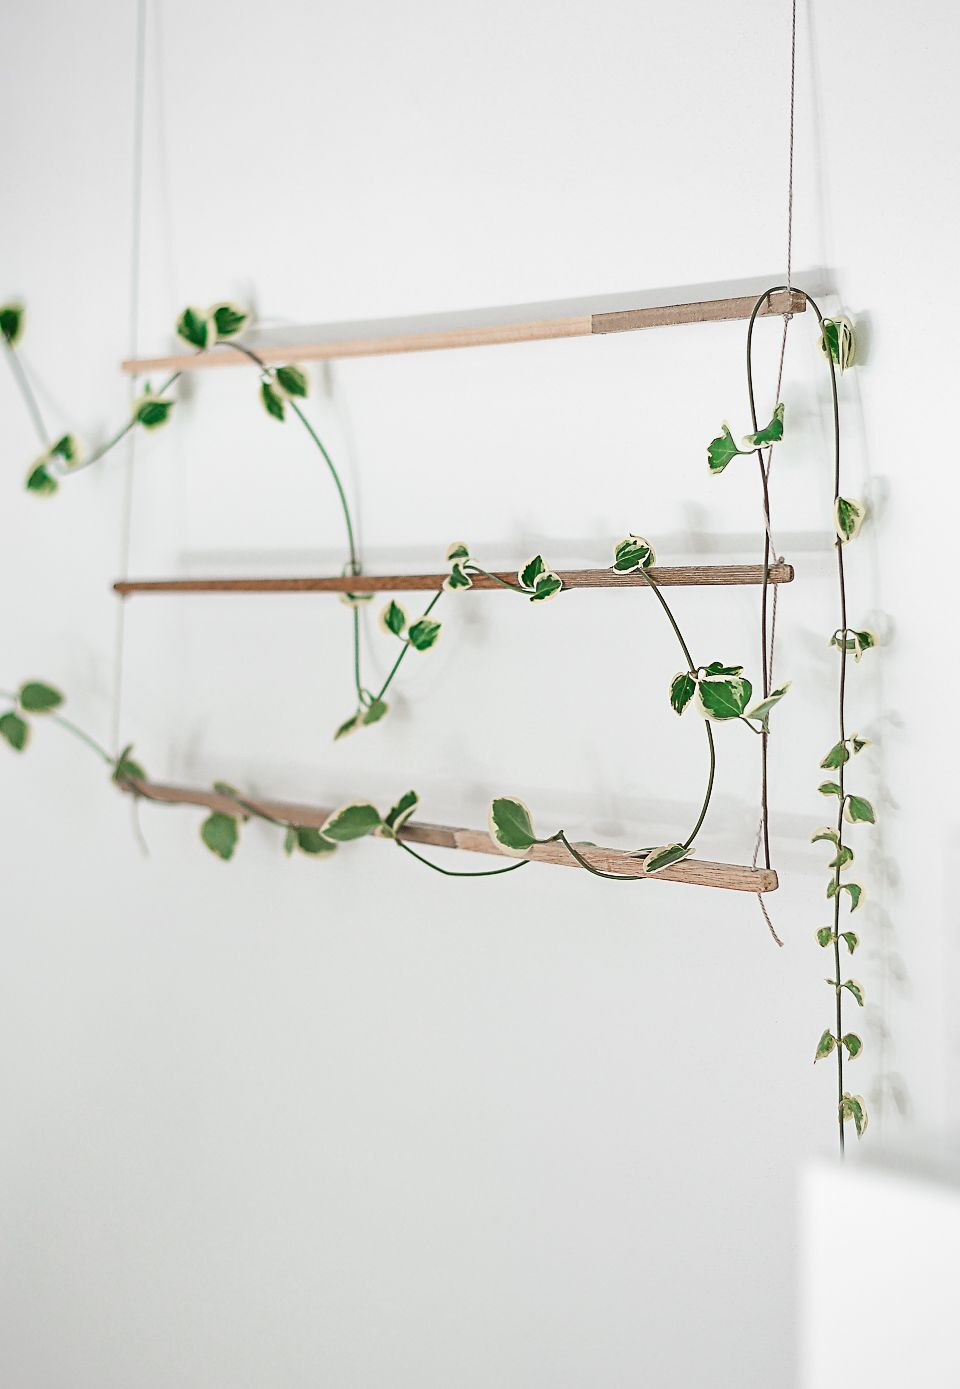 Diy An Indoor Trellis For Climbing Vines Wall Climbing